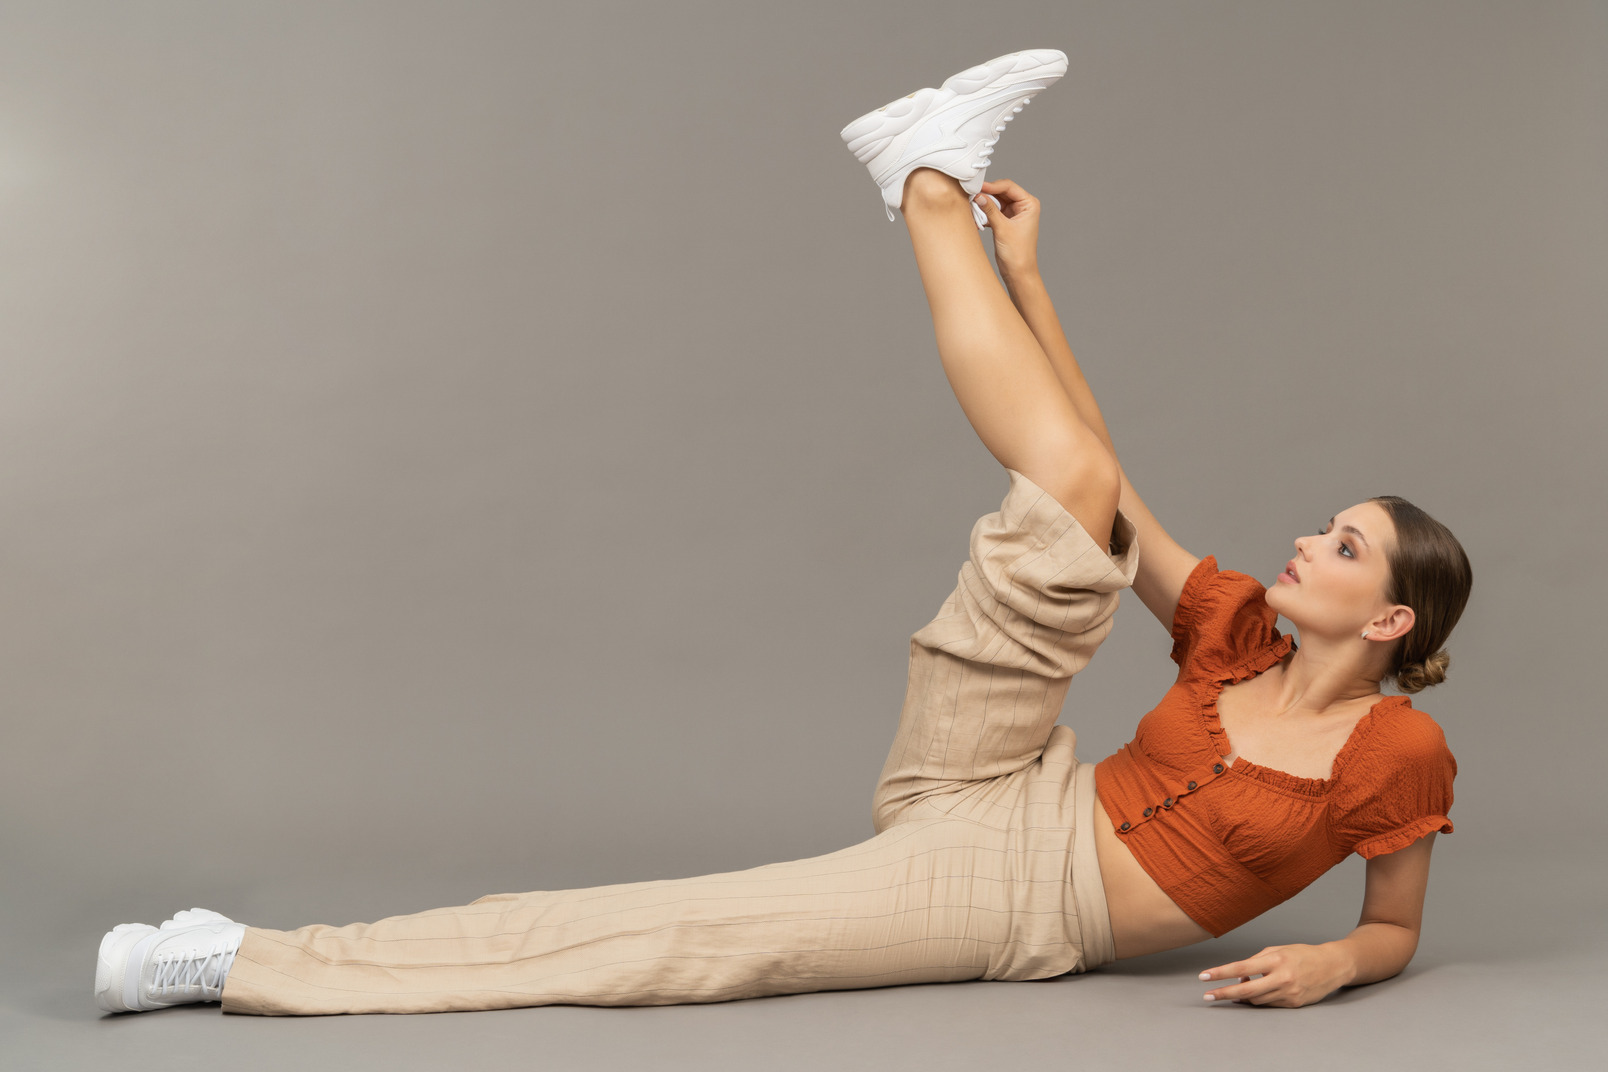 Young woman lies down and puts her leg up